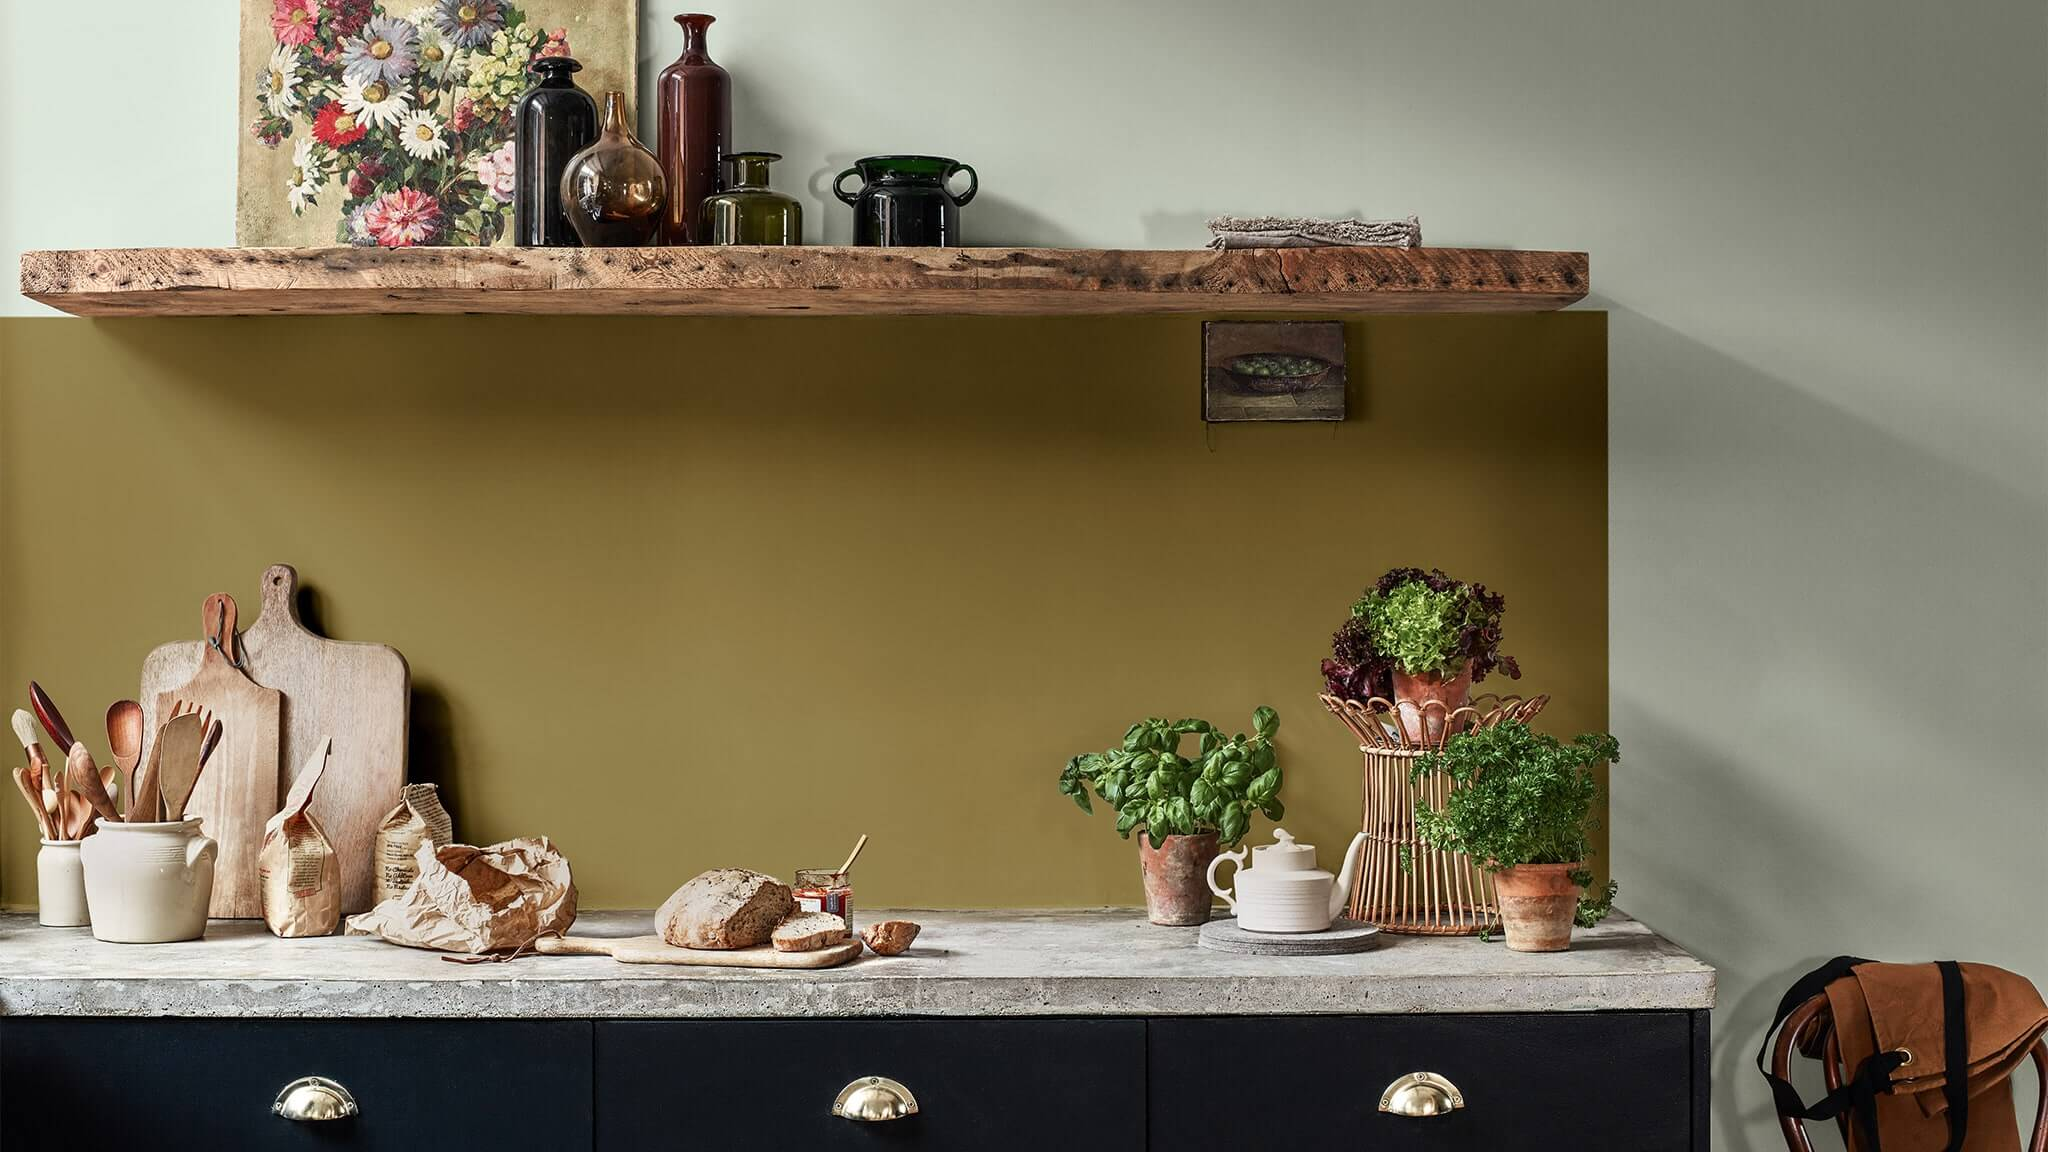 dulux-colour-futures-colour-of-the-year-2020-a-home-for-creativity-kitchen-inspiration-south-africa-9.jpg